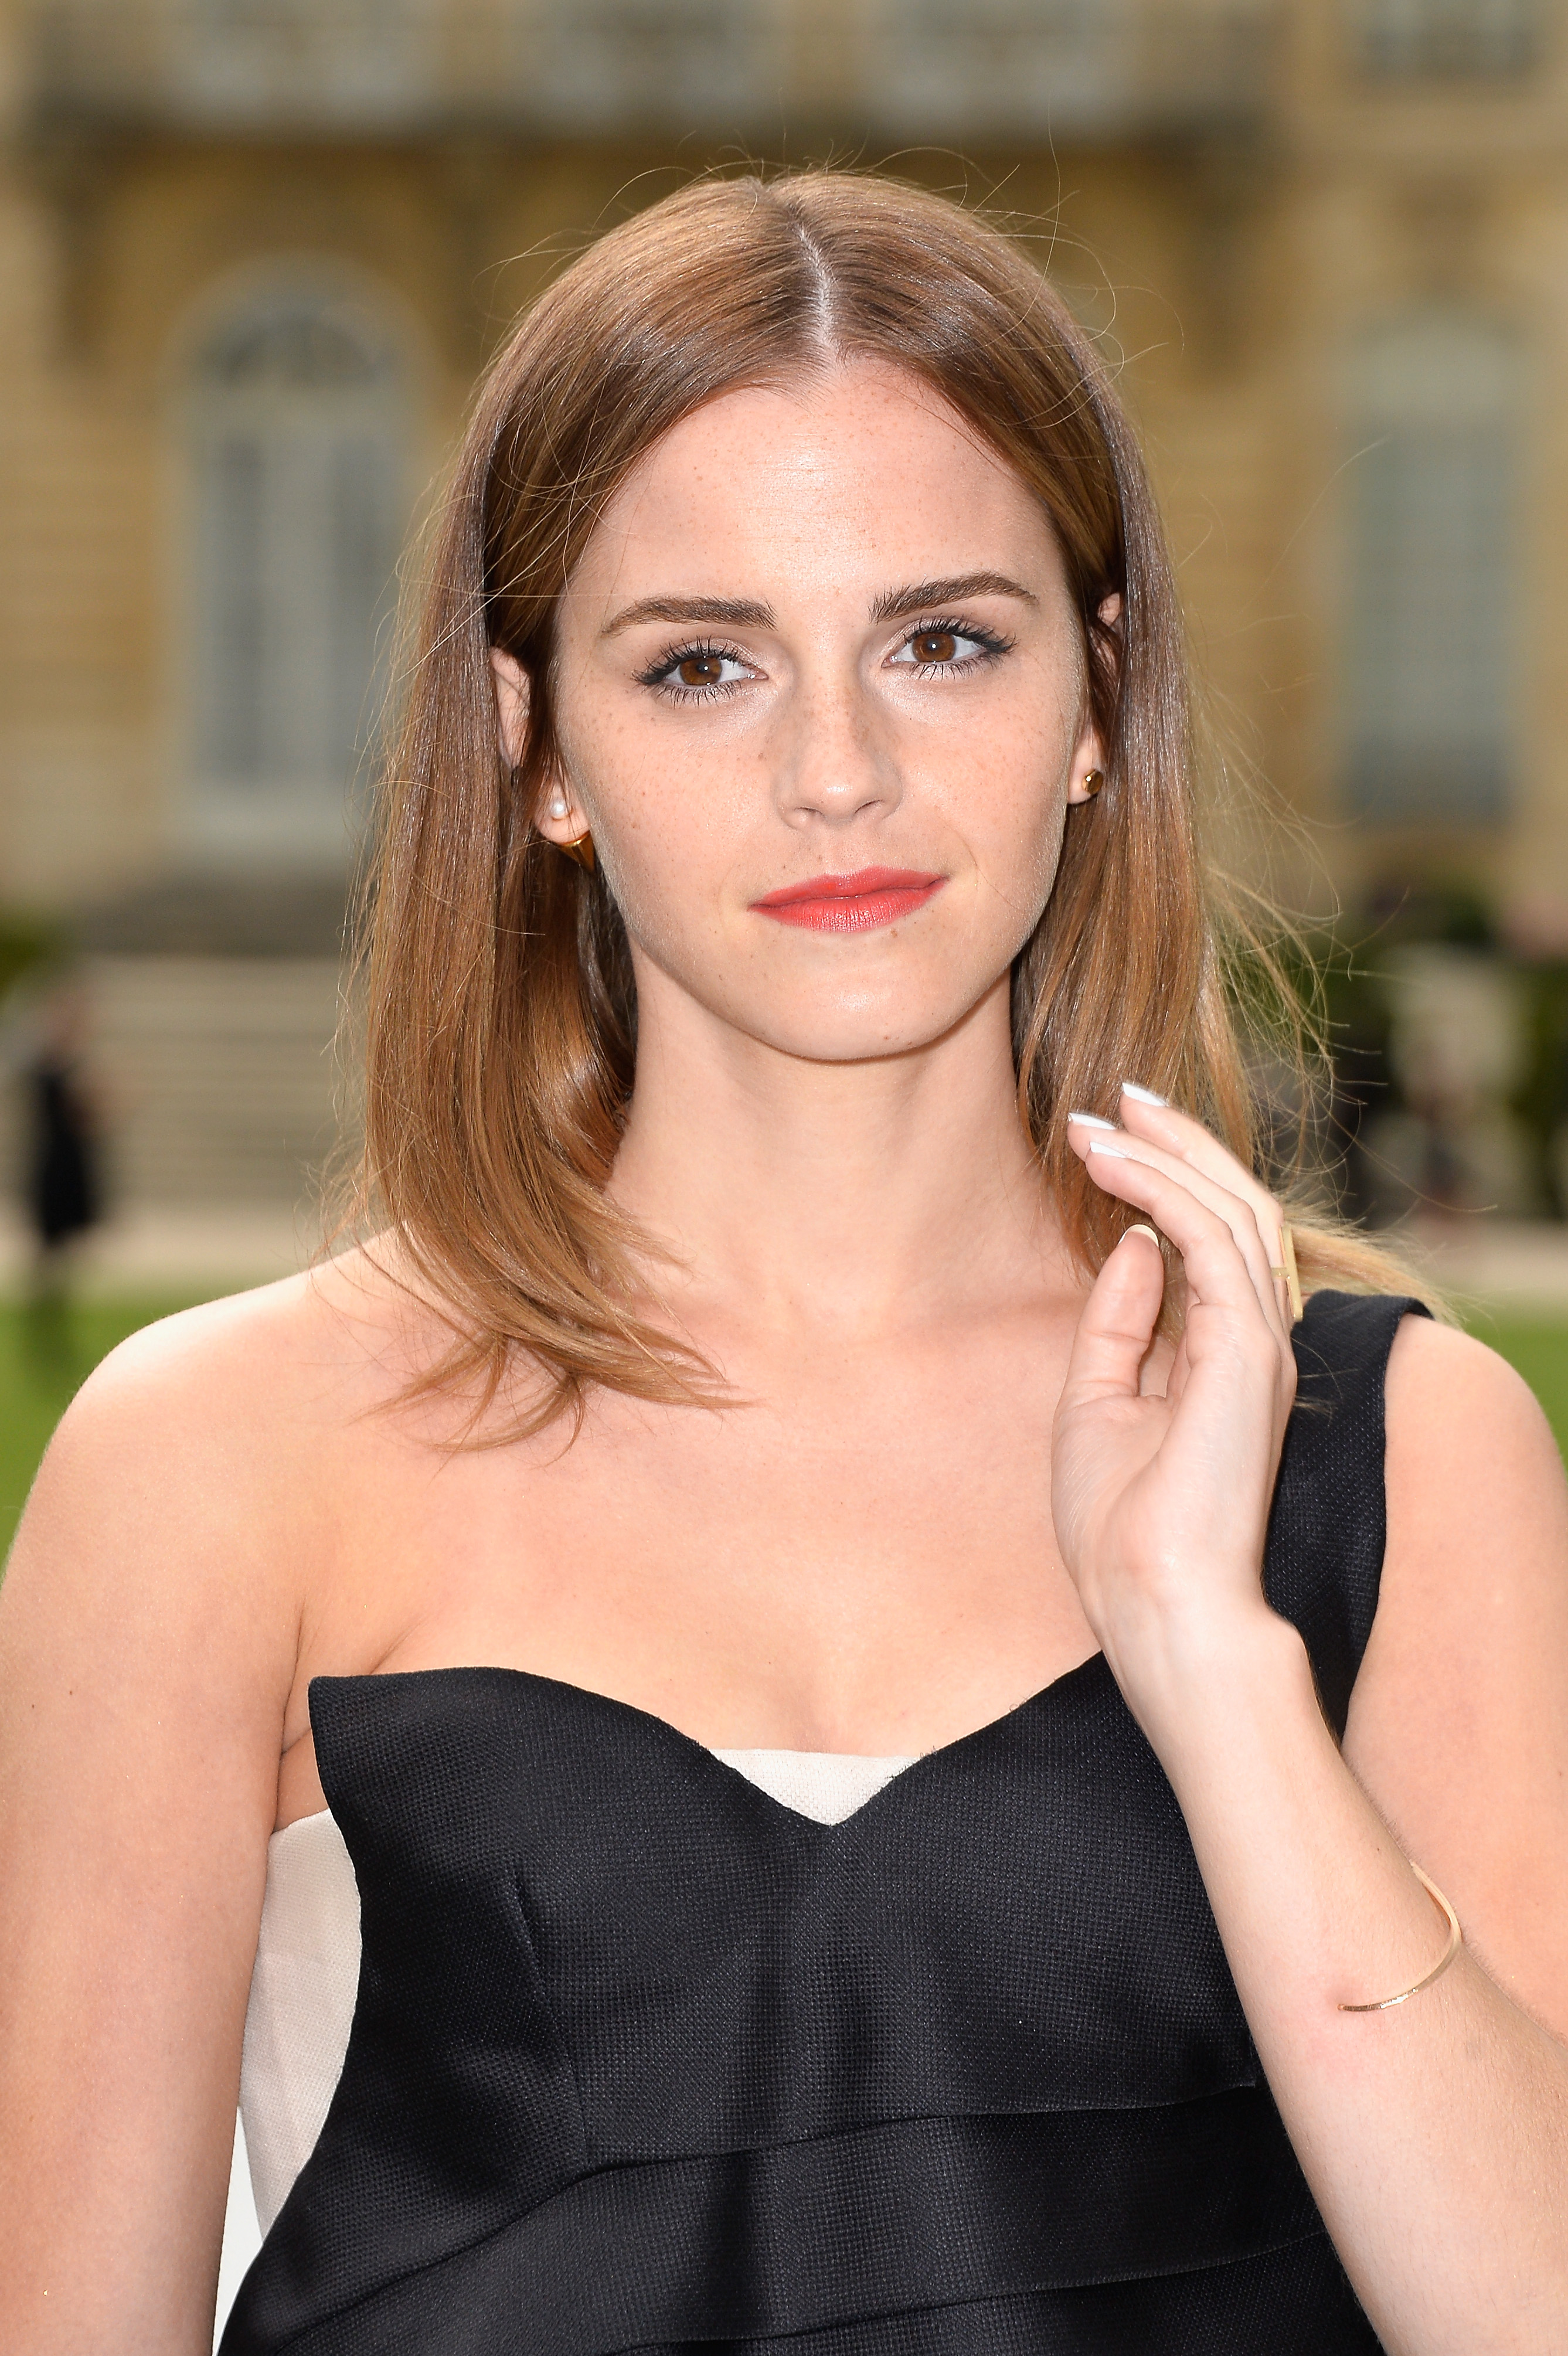 how did emma watson meet matthew janney? the story would fit right